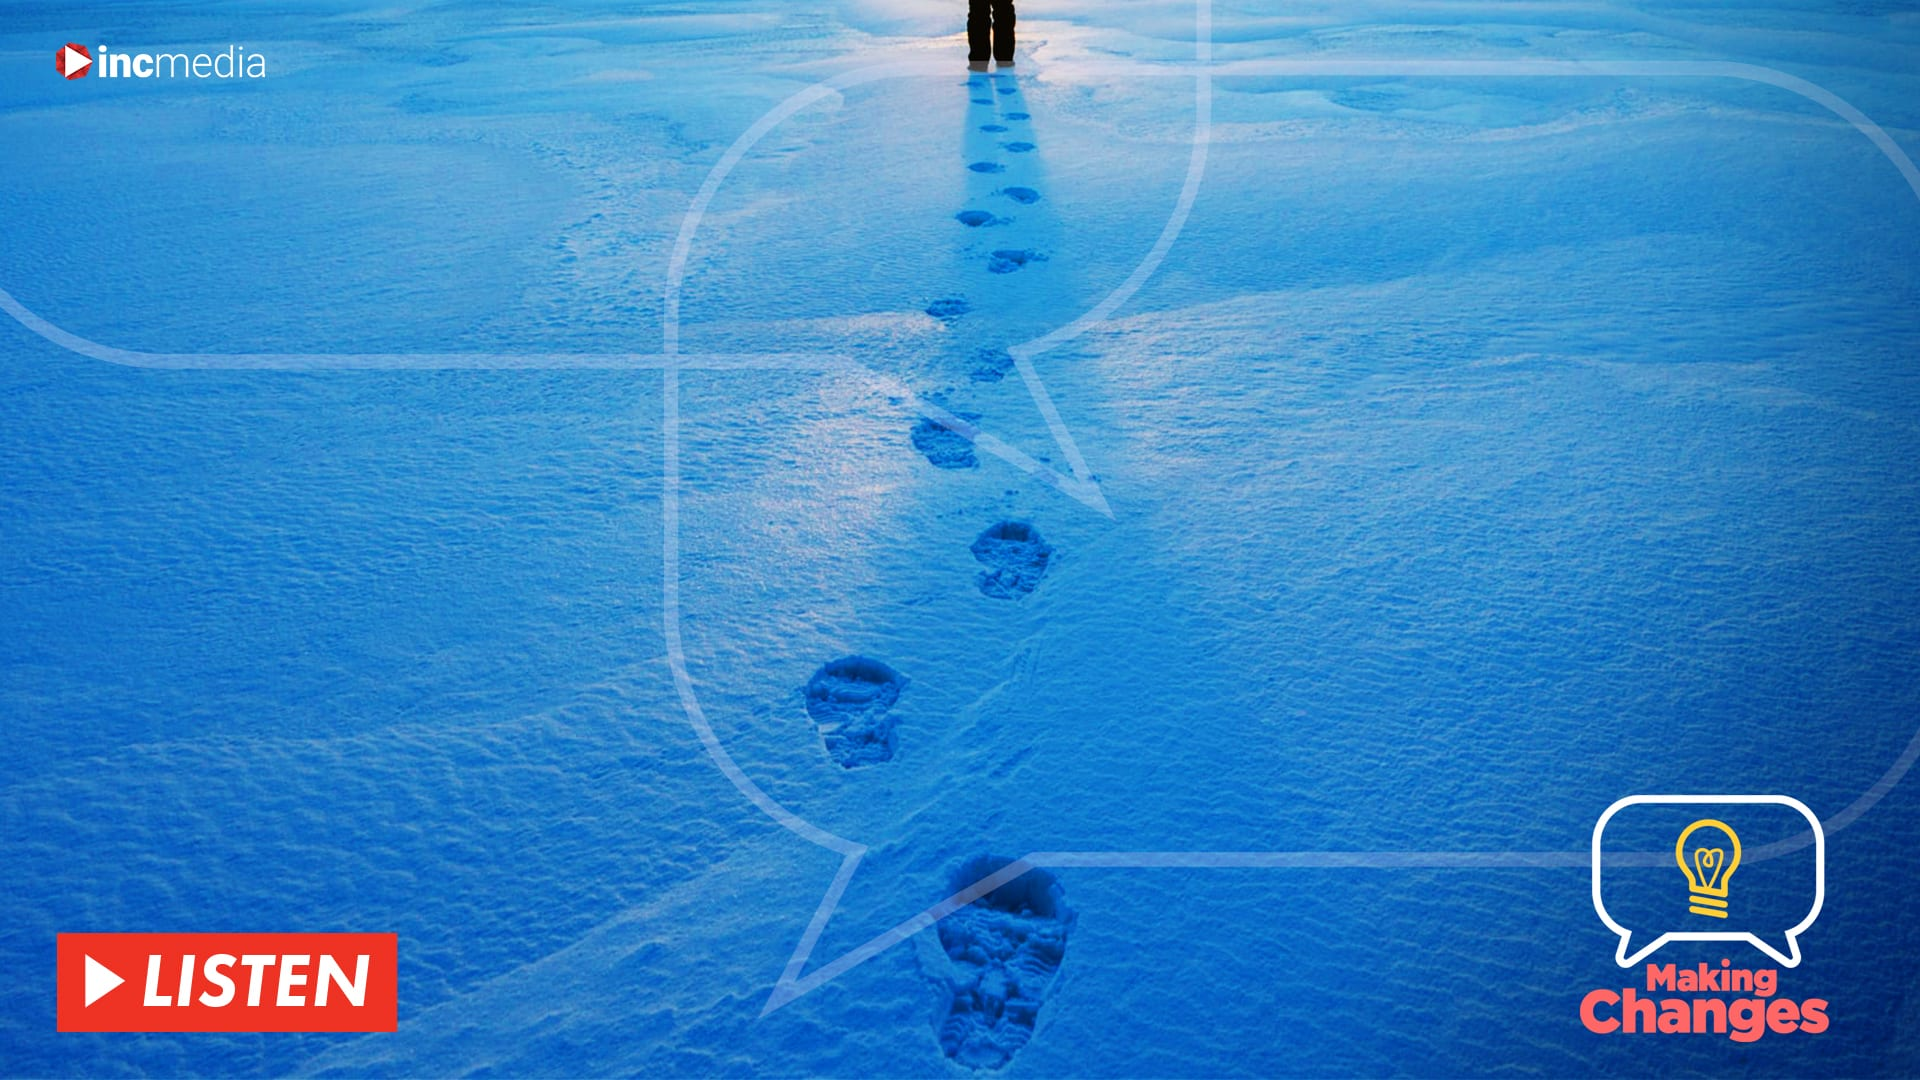 Making Changes Podcast banner showing a person's footsteps in the snow